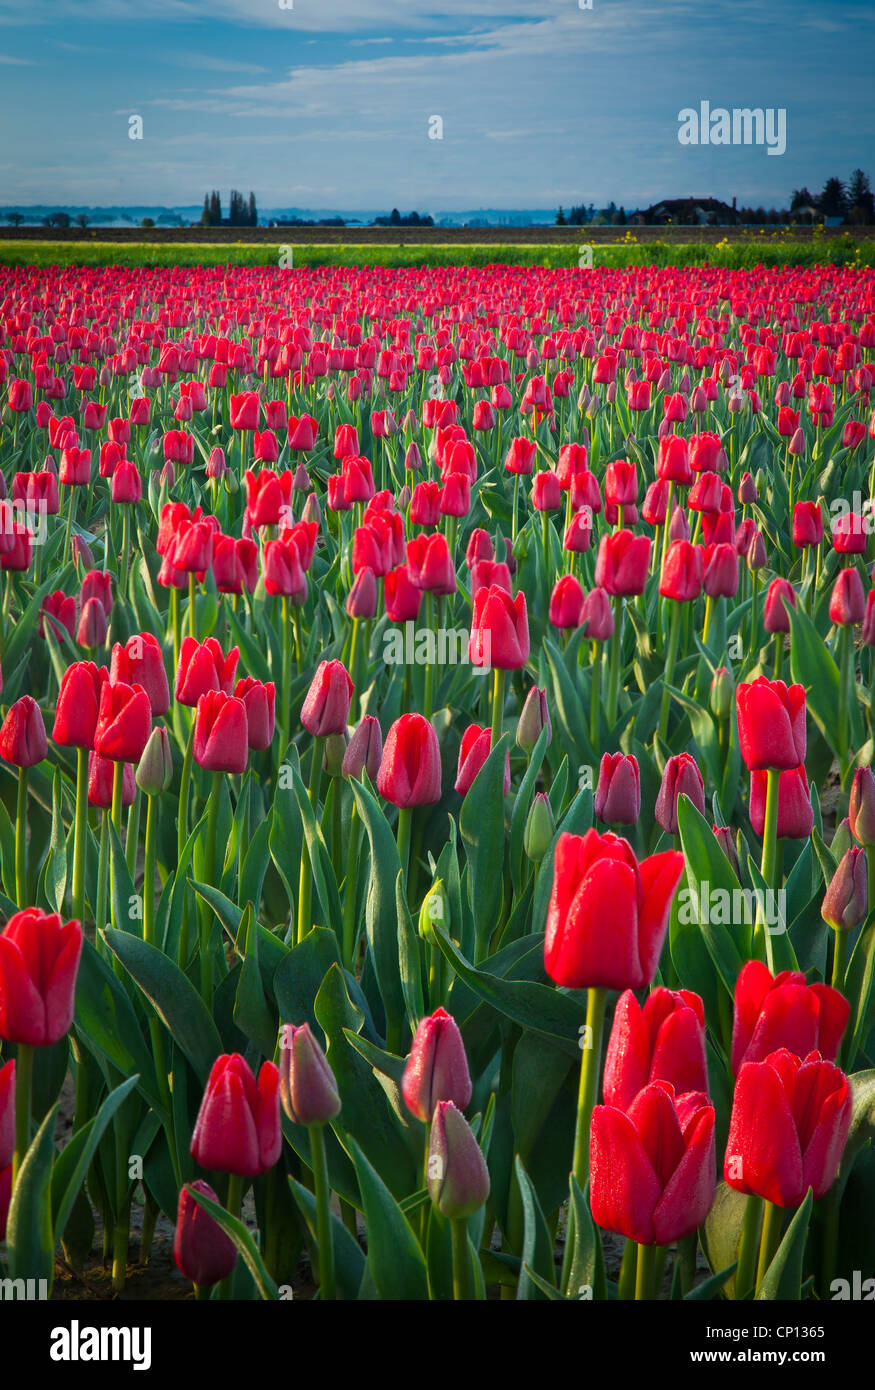 Tulips in Skagit Valley during the annual Tulip Festival Stock Photo